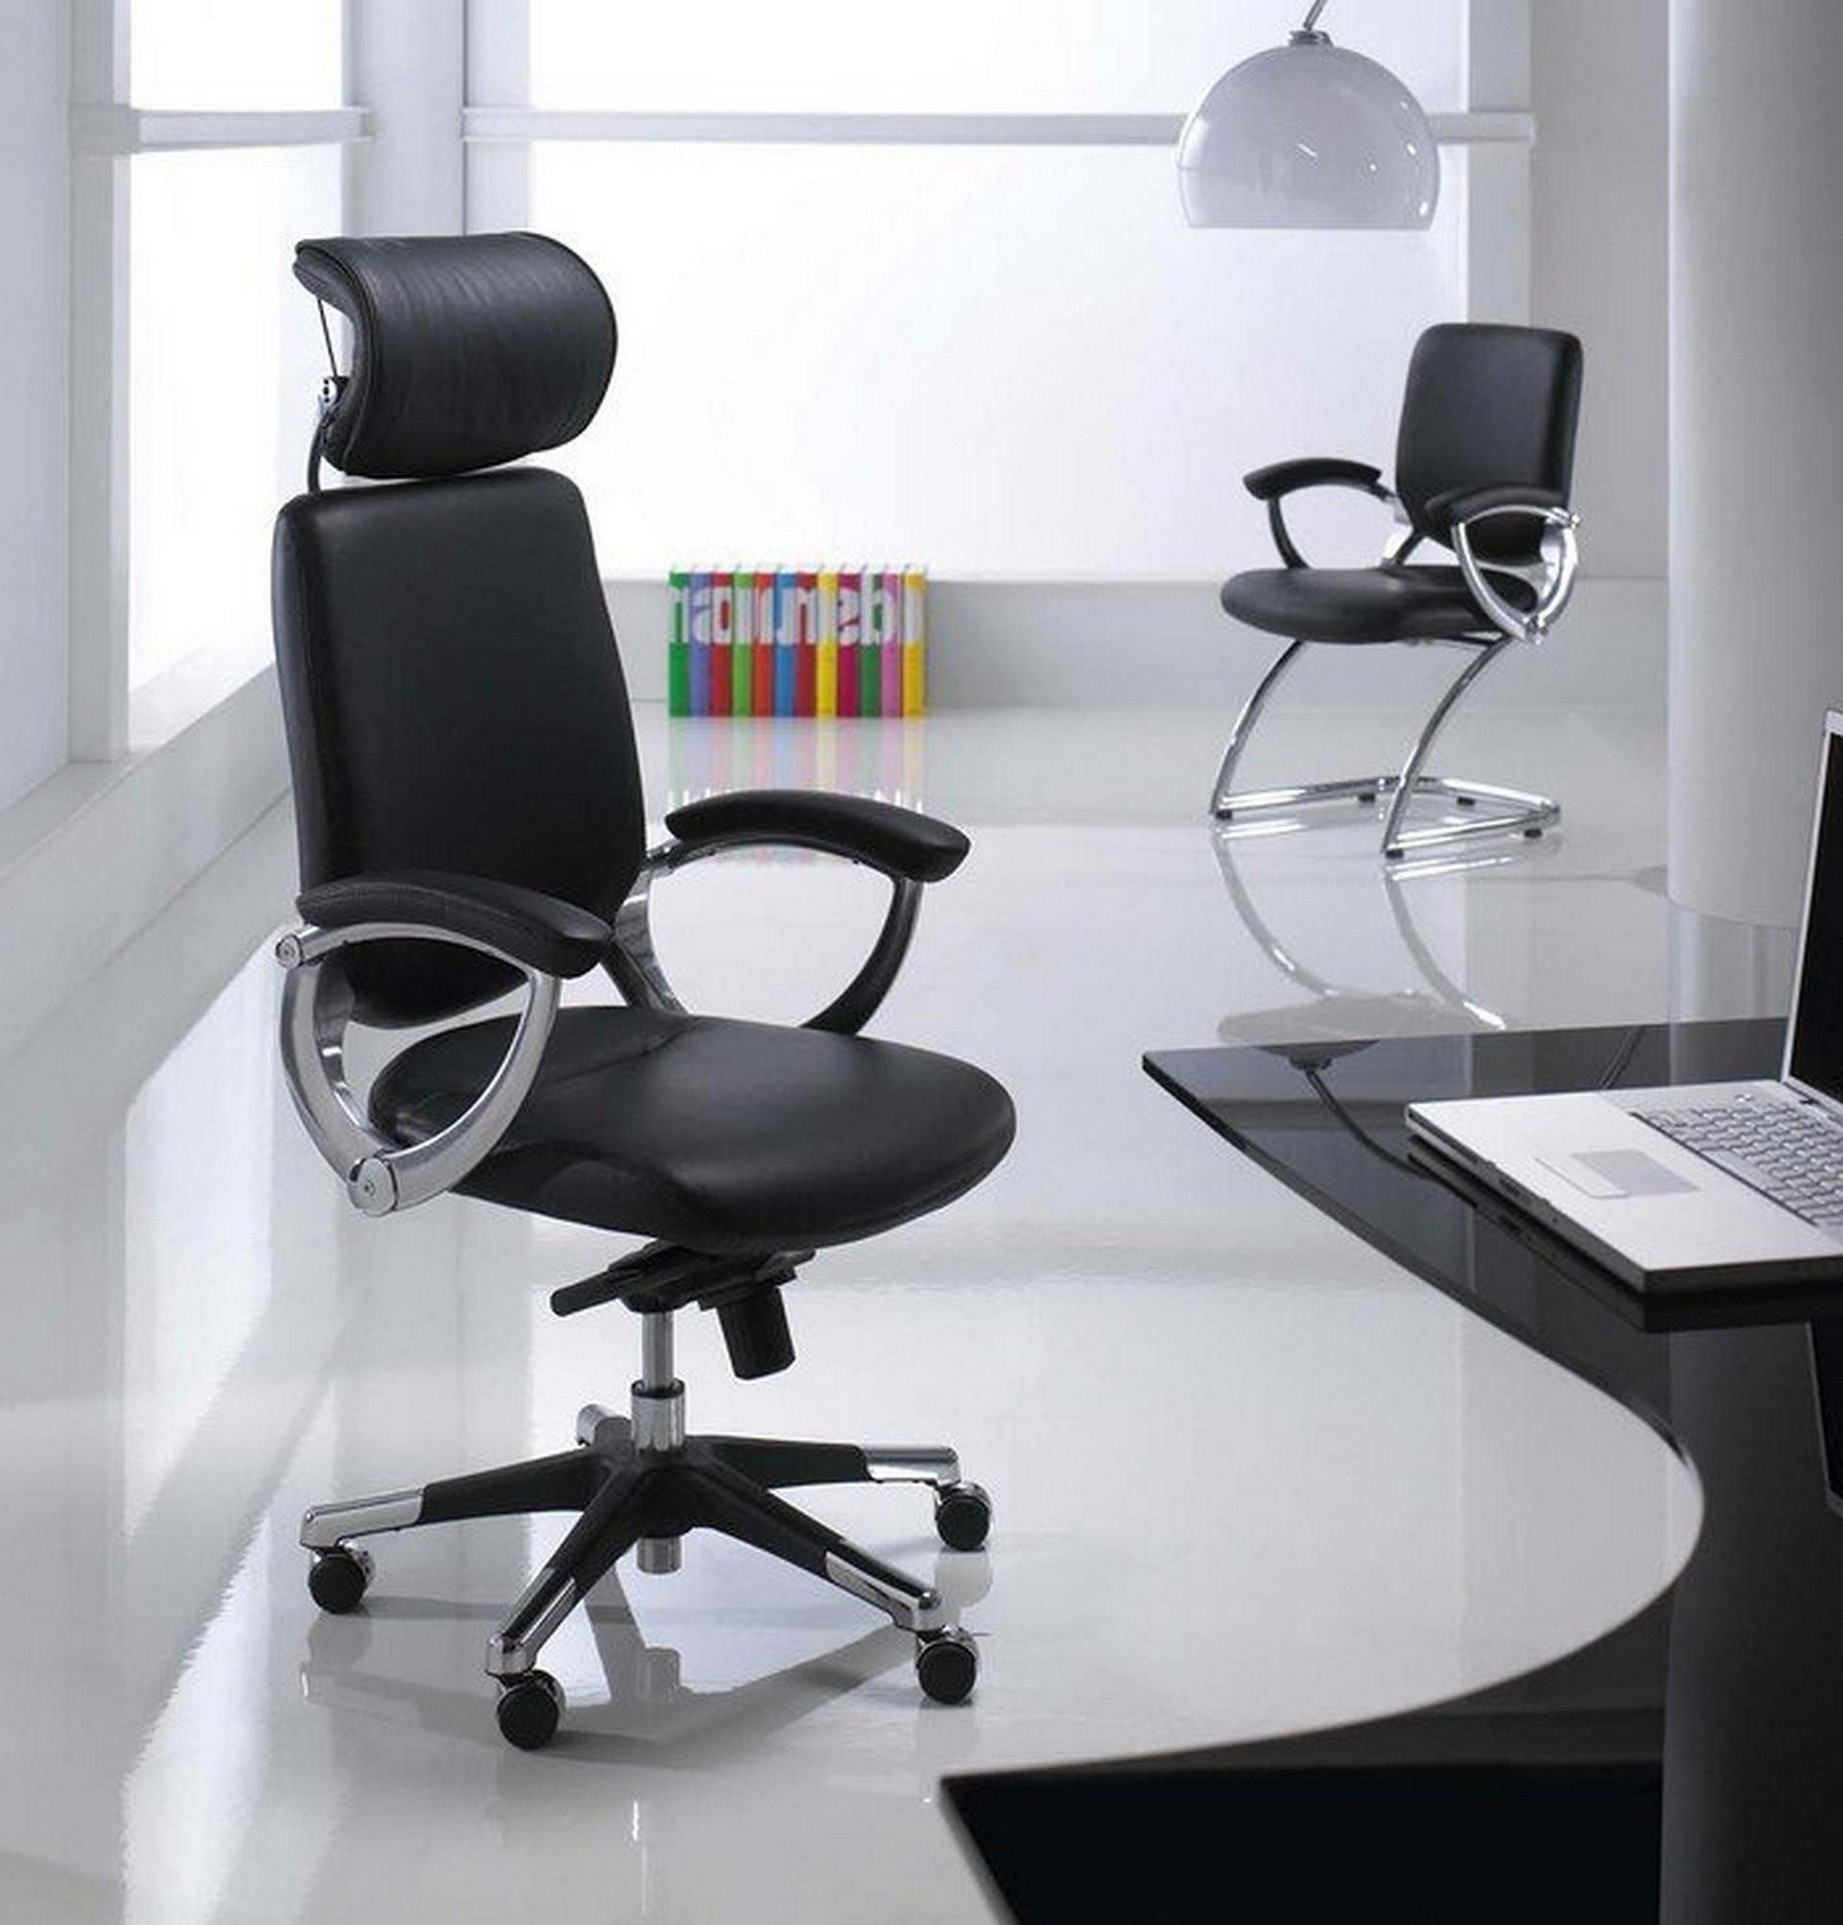 Comfortable Office Chairs 9 Different Ways To Make Your Office Chair More Comfortable